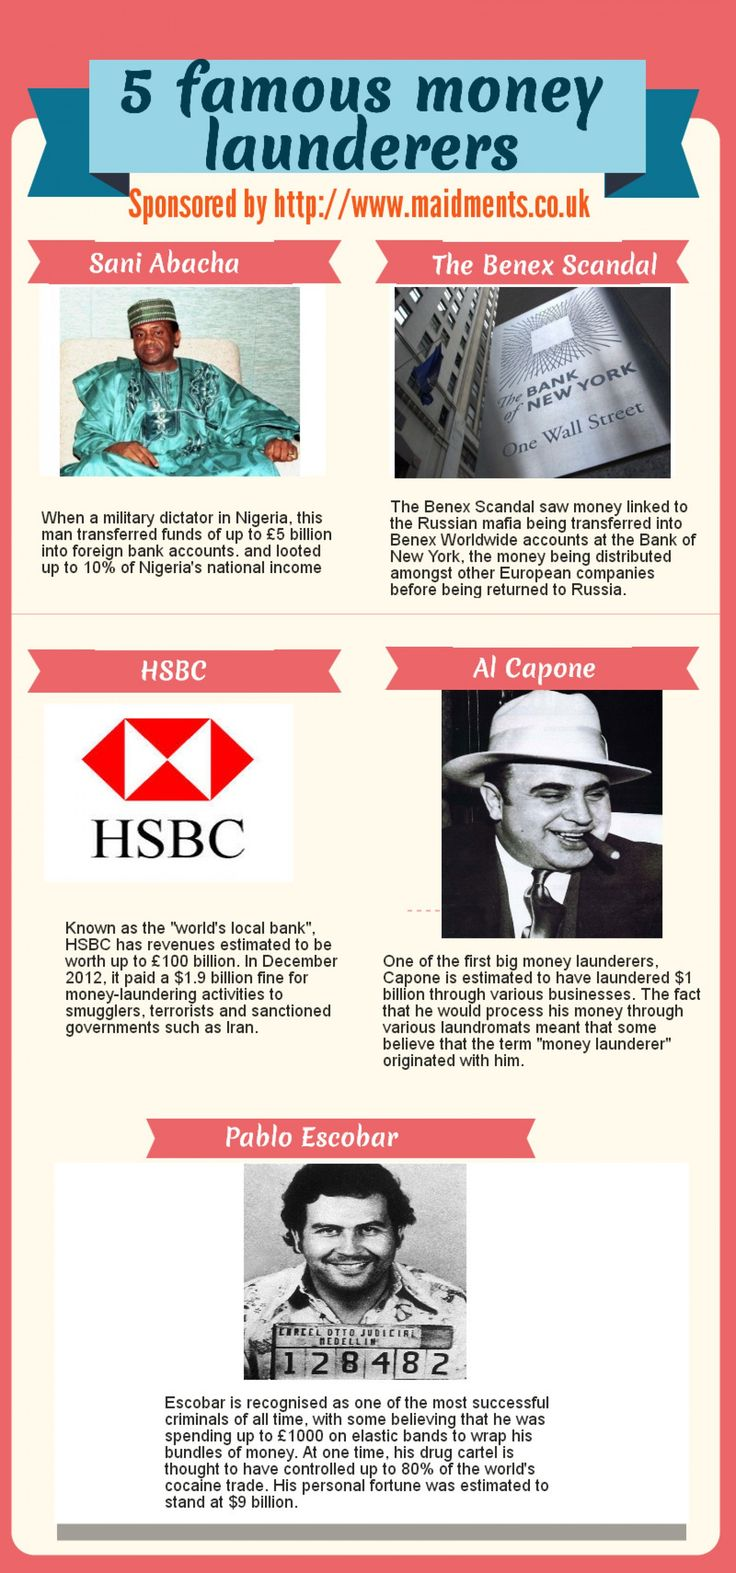 5 of the most famous money laundering cases to date. #infographic #moneylaundering #law